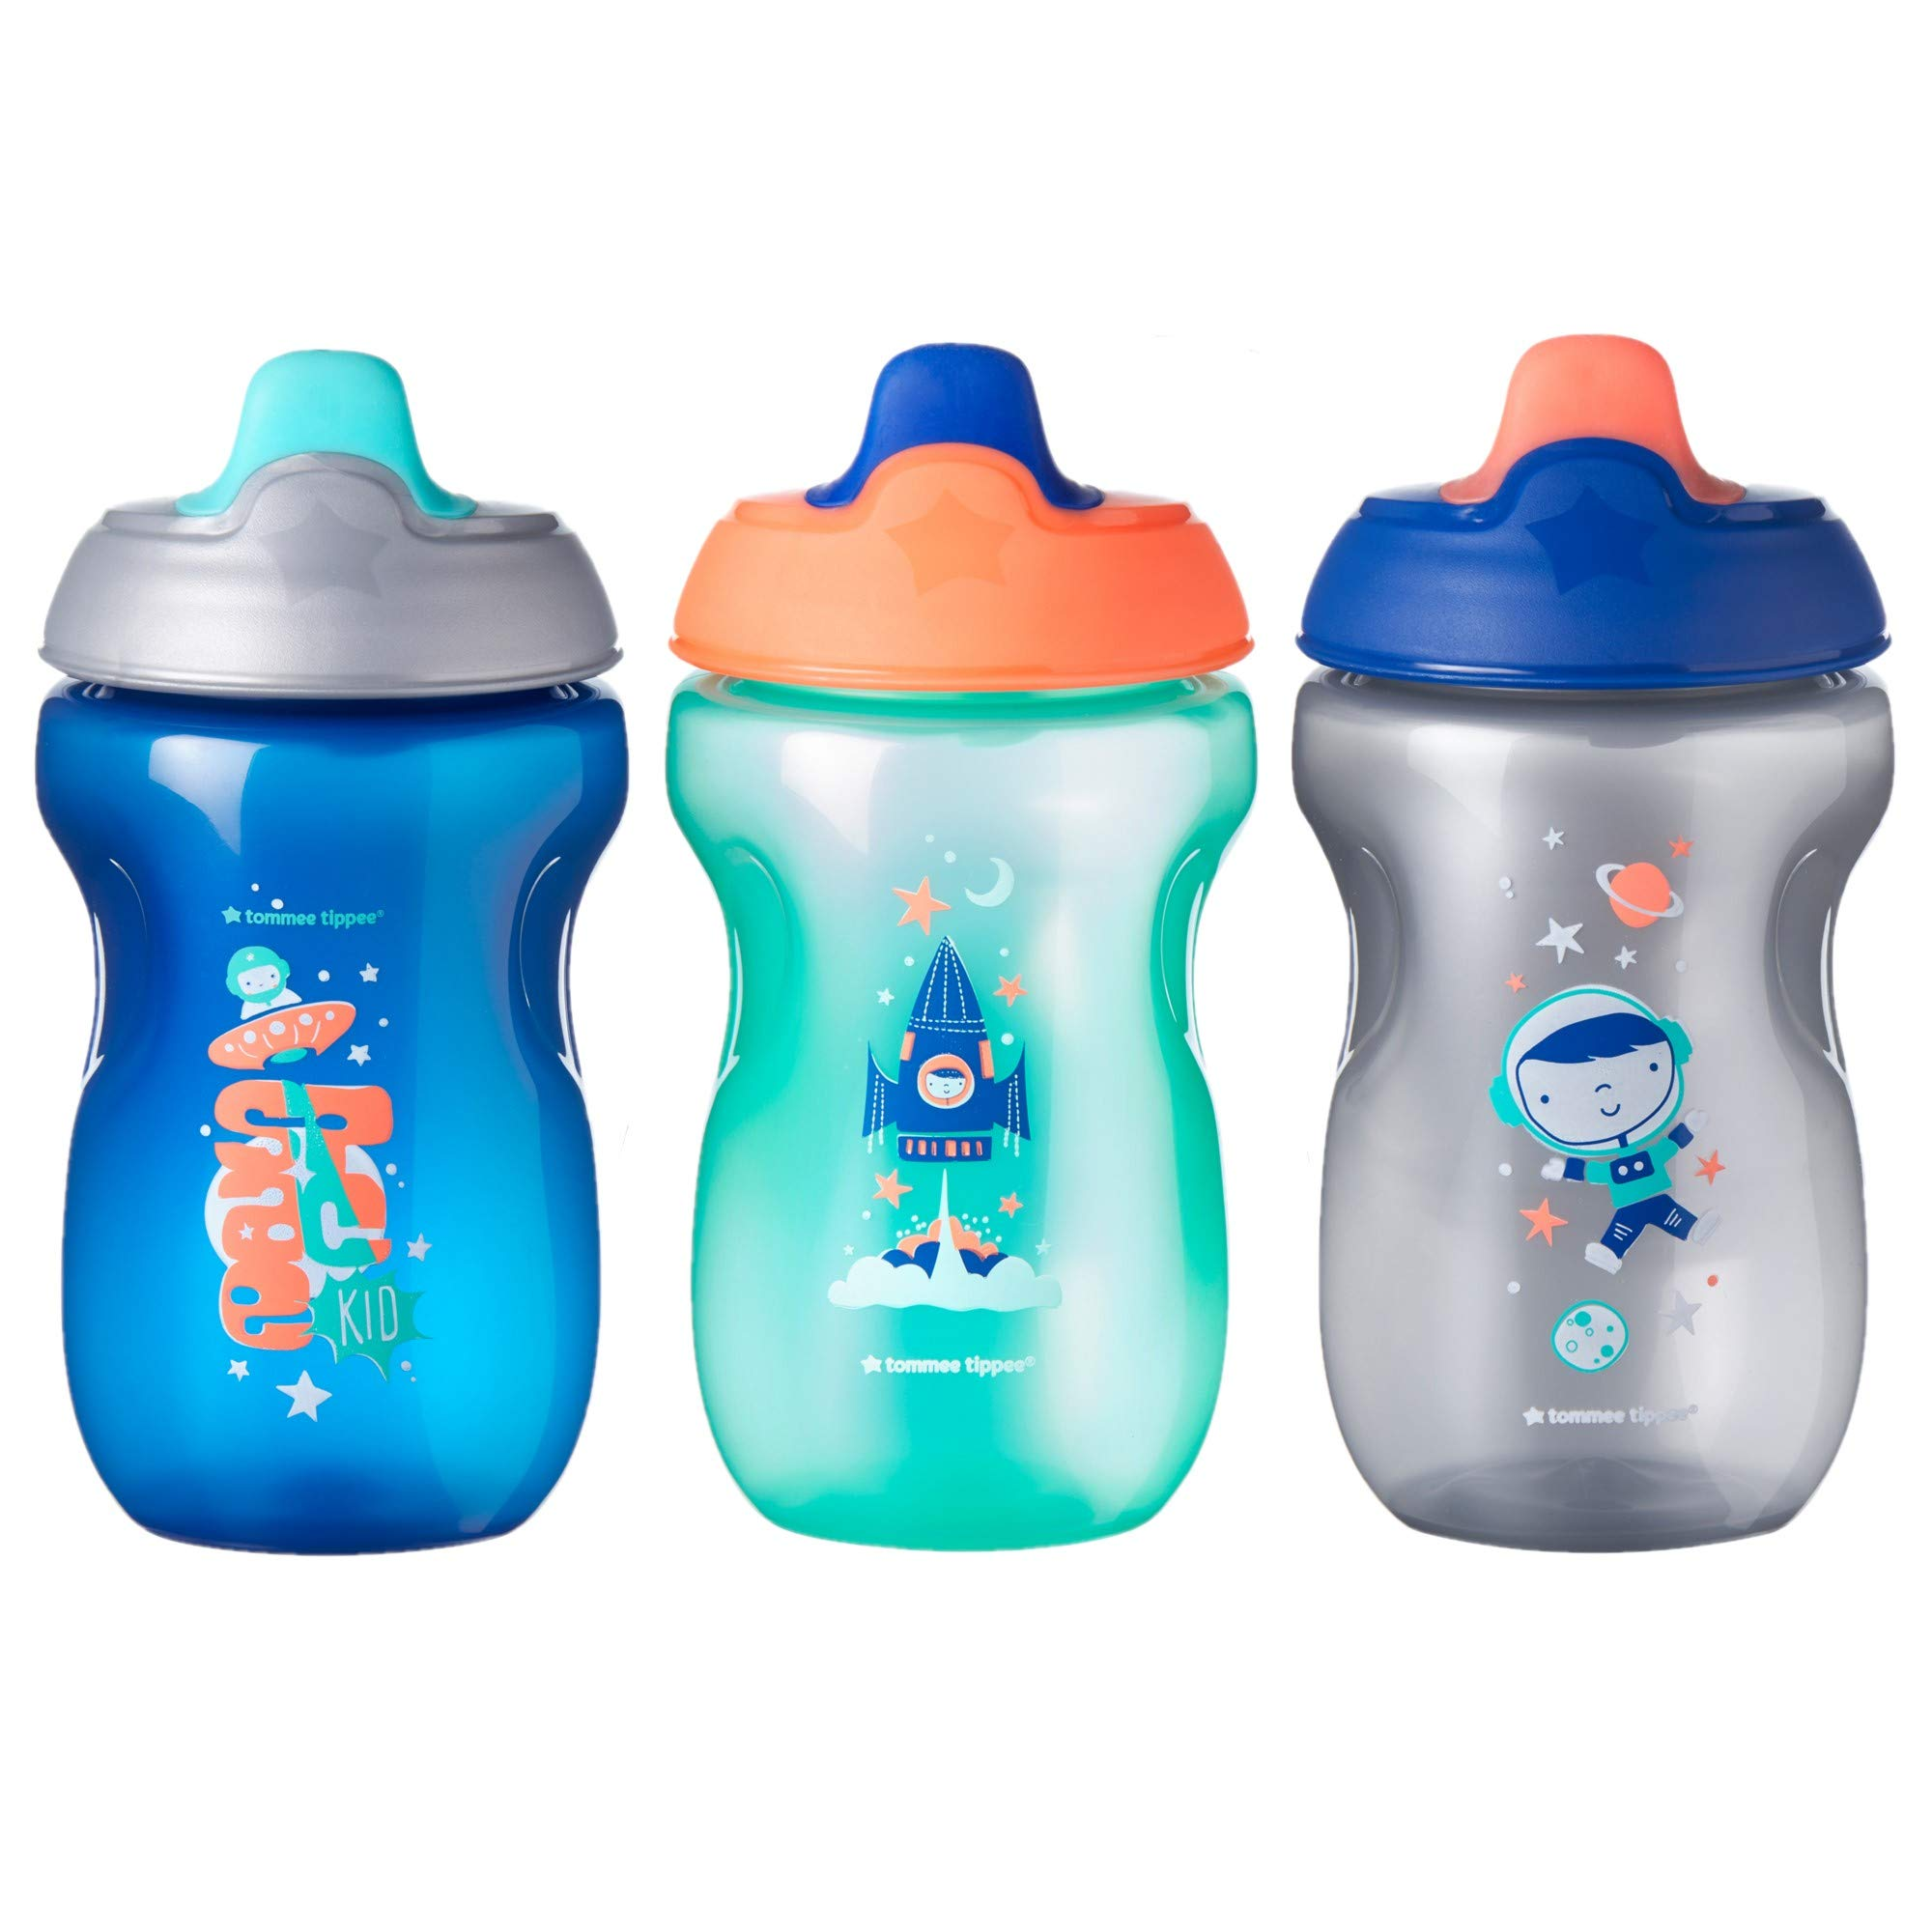 Tommee Tippee Non-Spill Toddler Sippee Cup, 9+ Months, 10 Oz, 3 Count, Boy, Gray, Blue and Green by Tommee Tippee